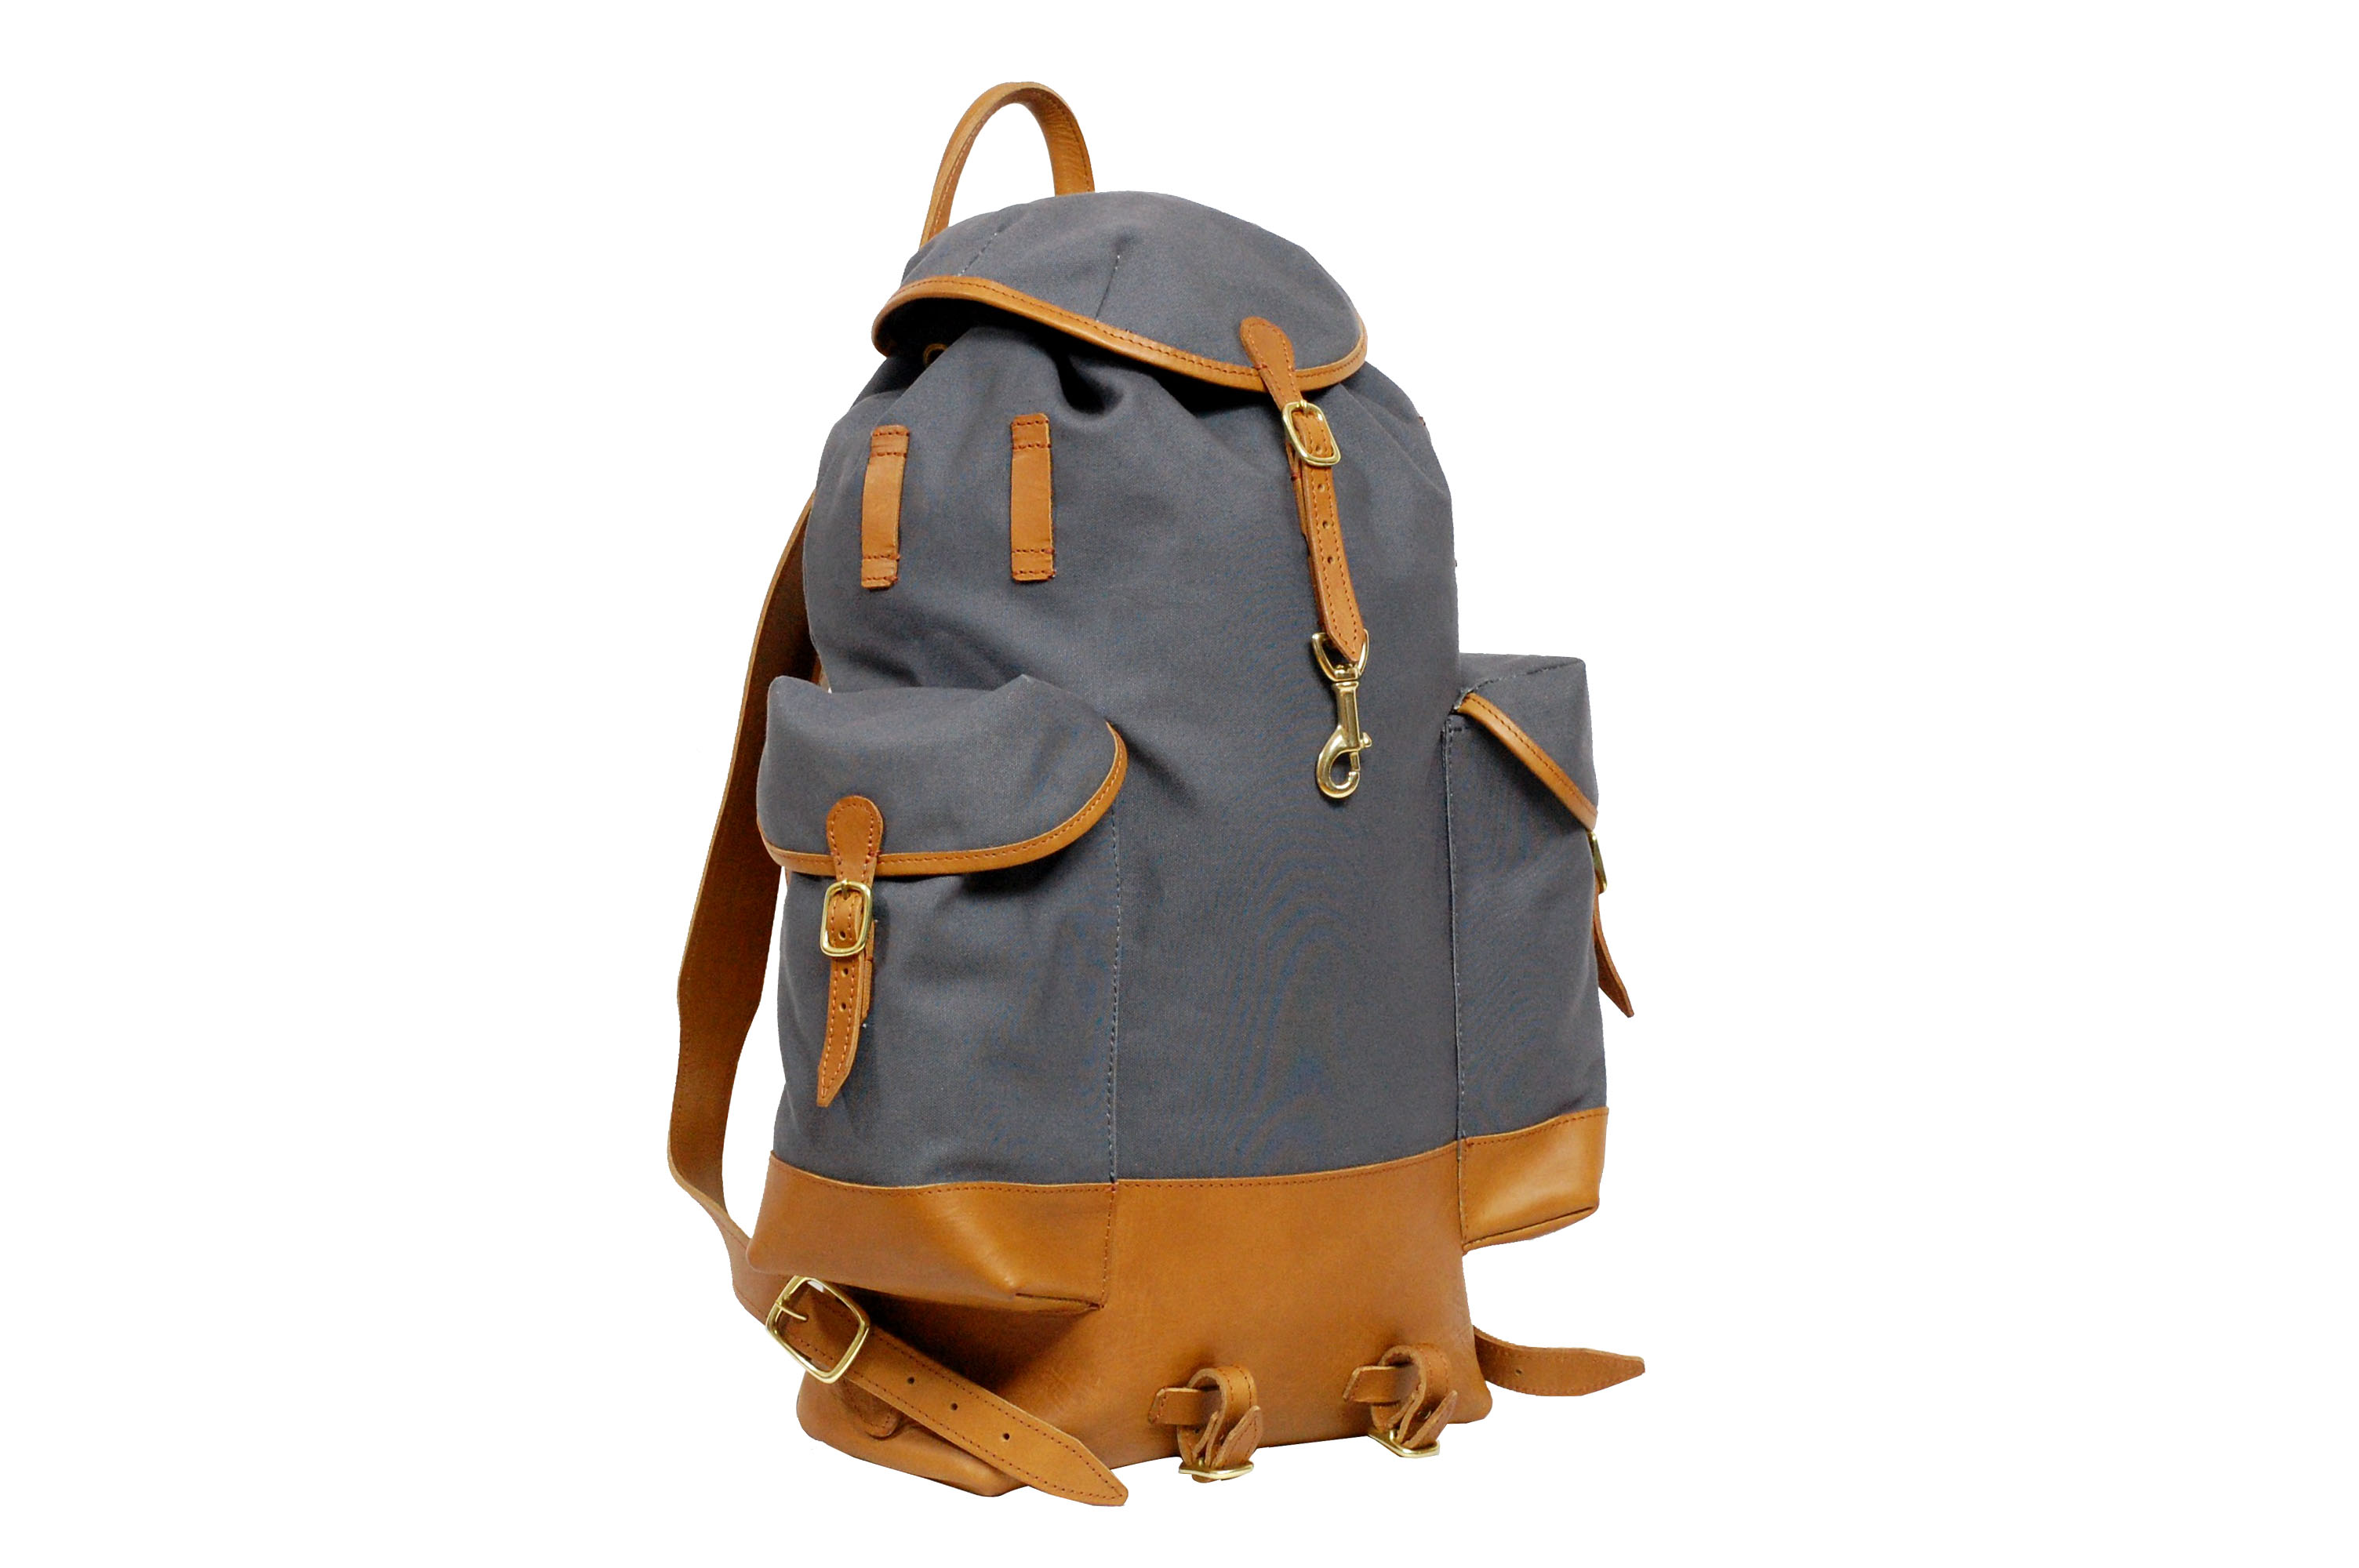 Mahiout perce-neige backpack in cotto canvas and leather, luxury designer backpack